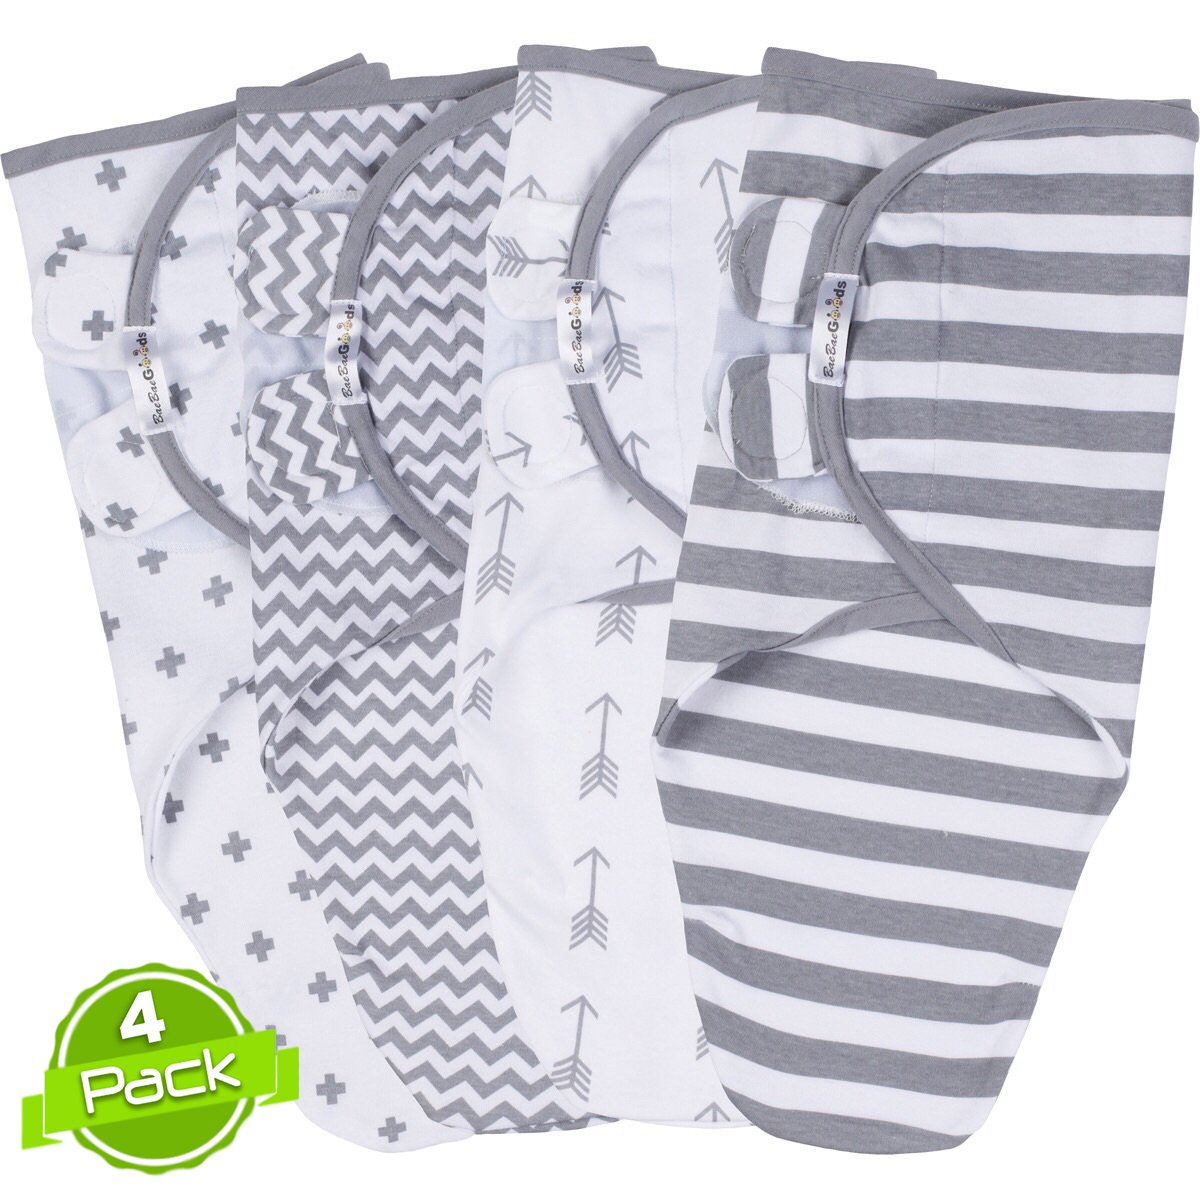 Swaddle Blanket, Adjustable Infant Baby Wrap Set of 4, Baby Swaddling Wrap Blankets Made in Soft Cotton, by BaeBae Goods …